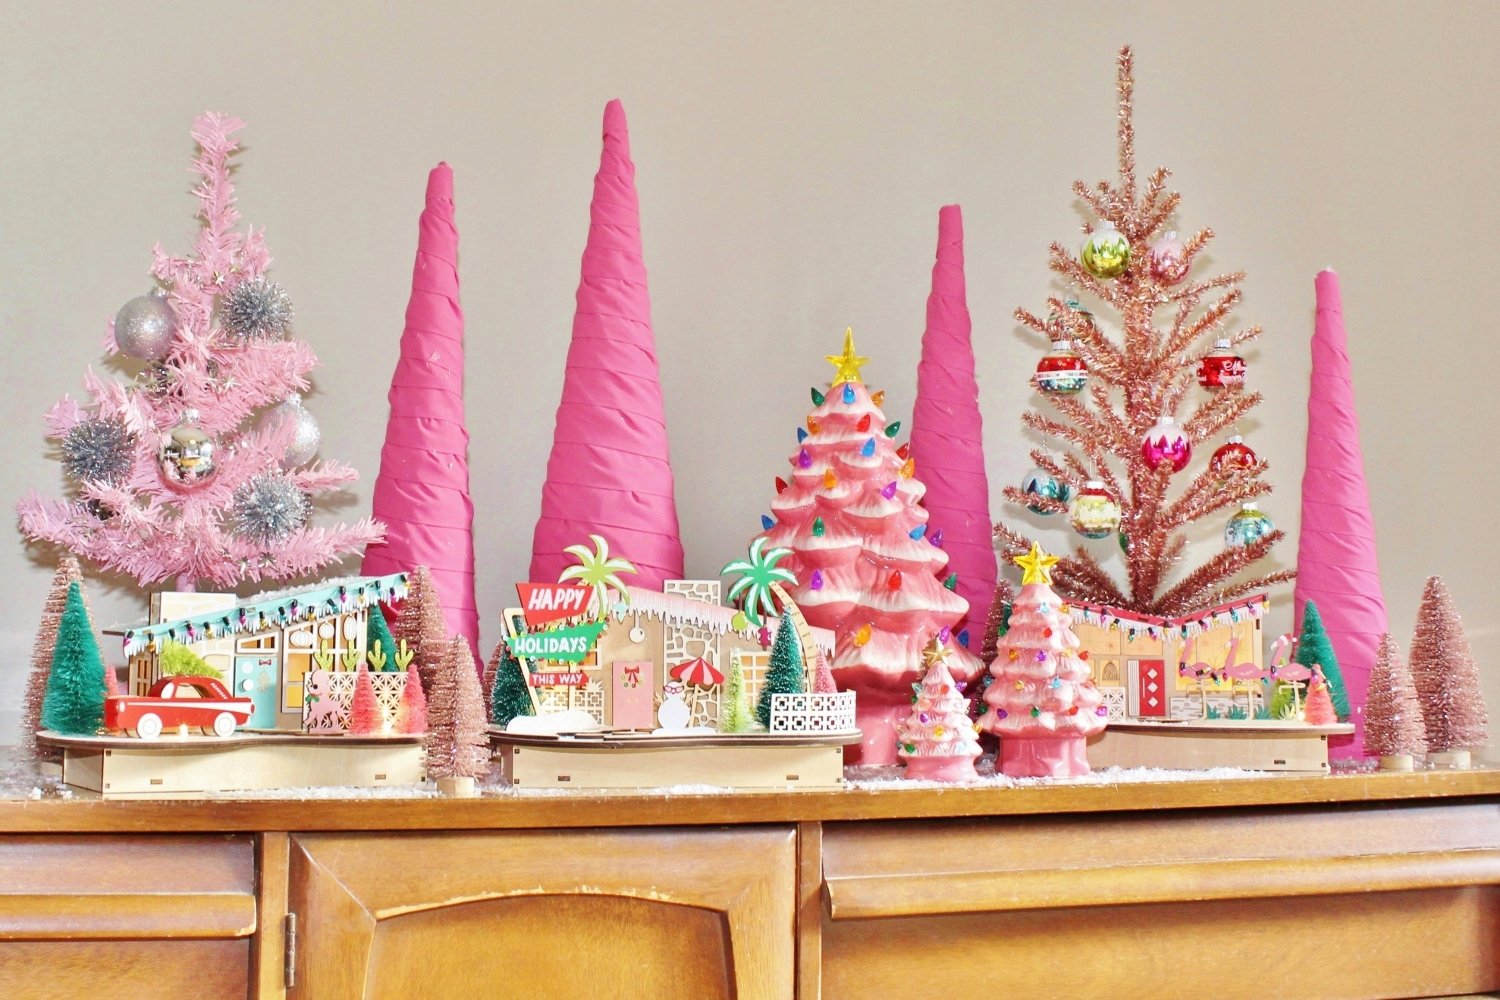 Pink Christmas trees and retro holiday village display